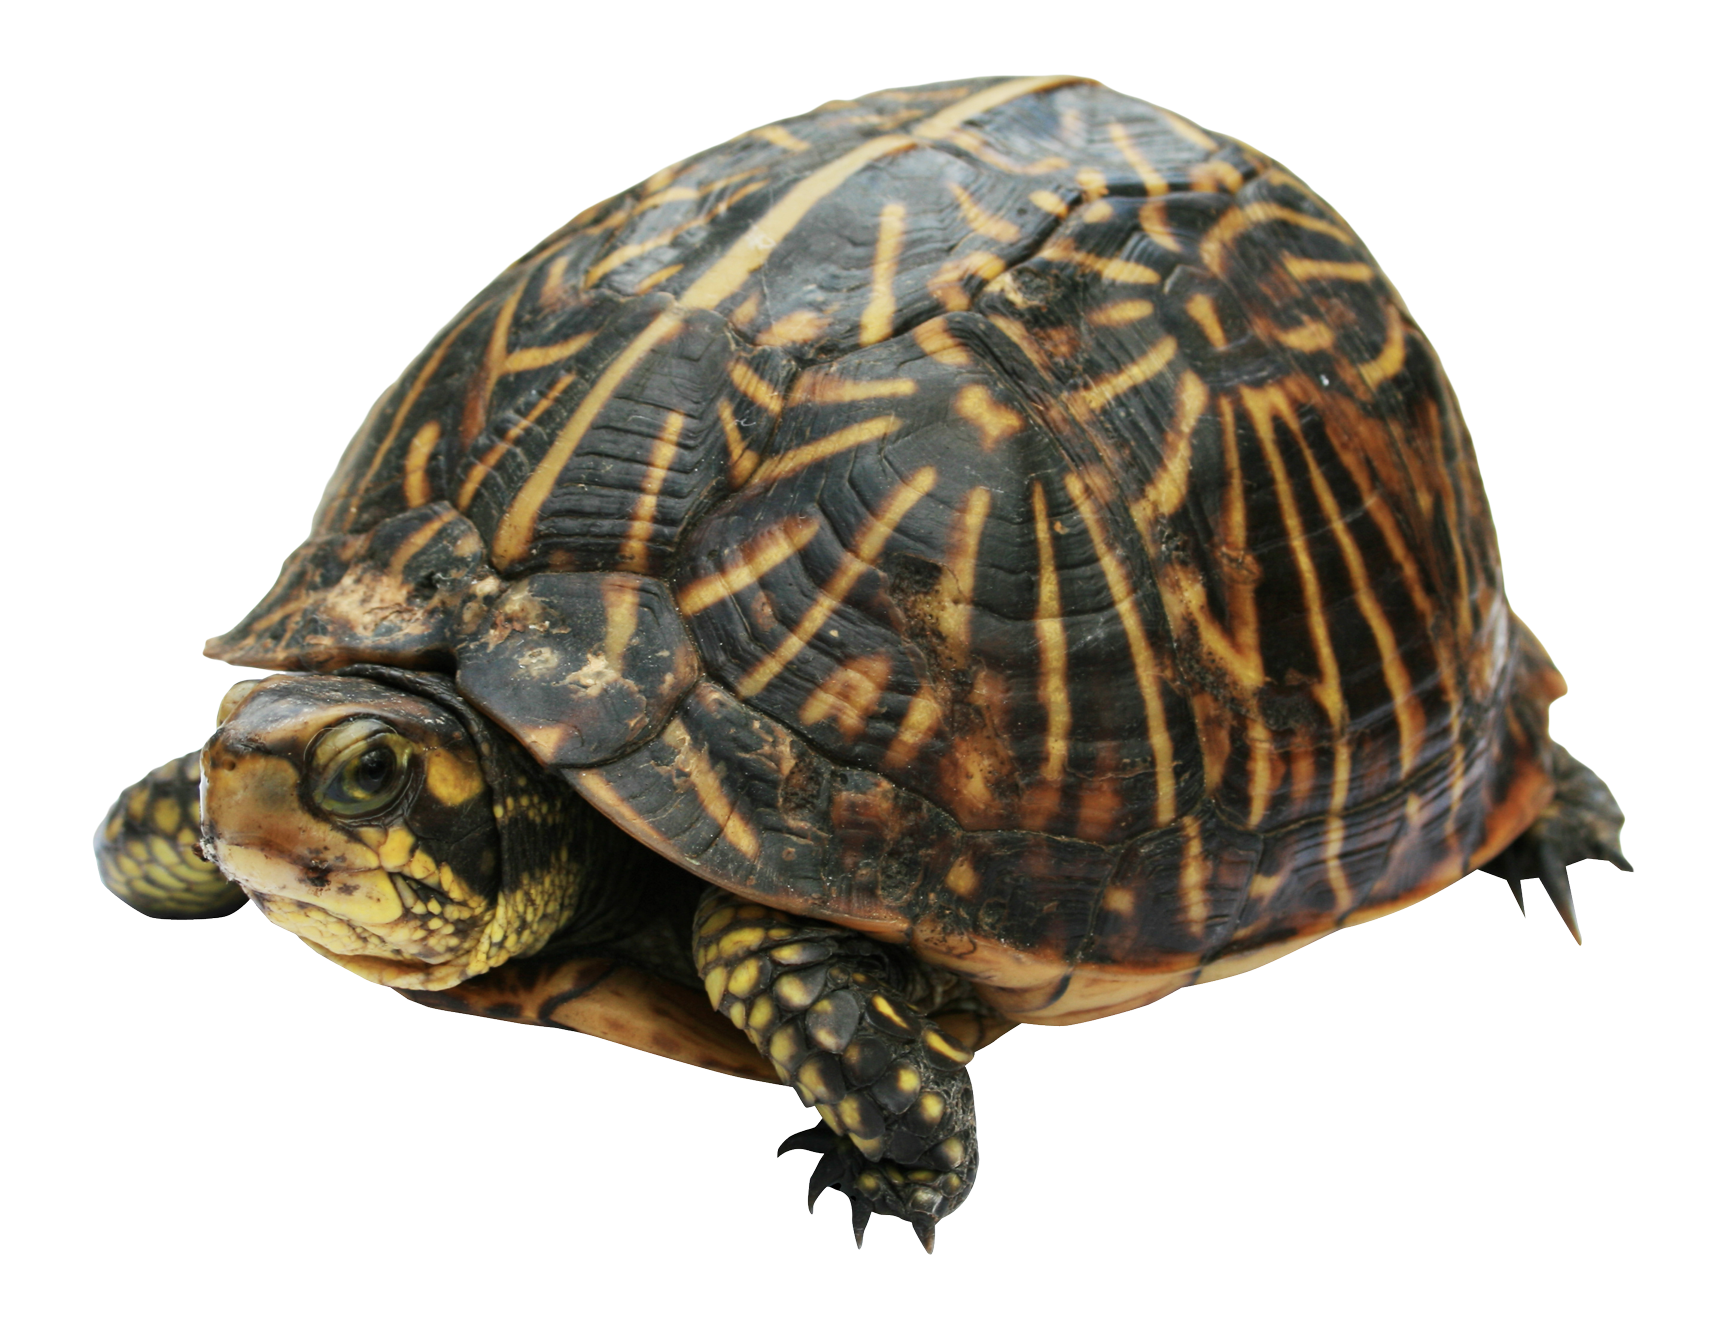 Turtle PNG Image.